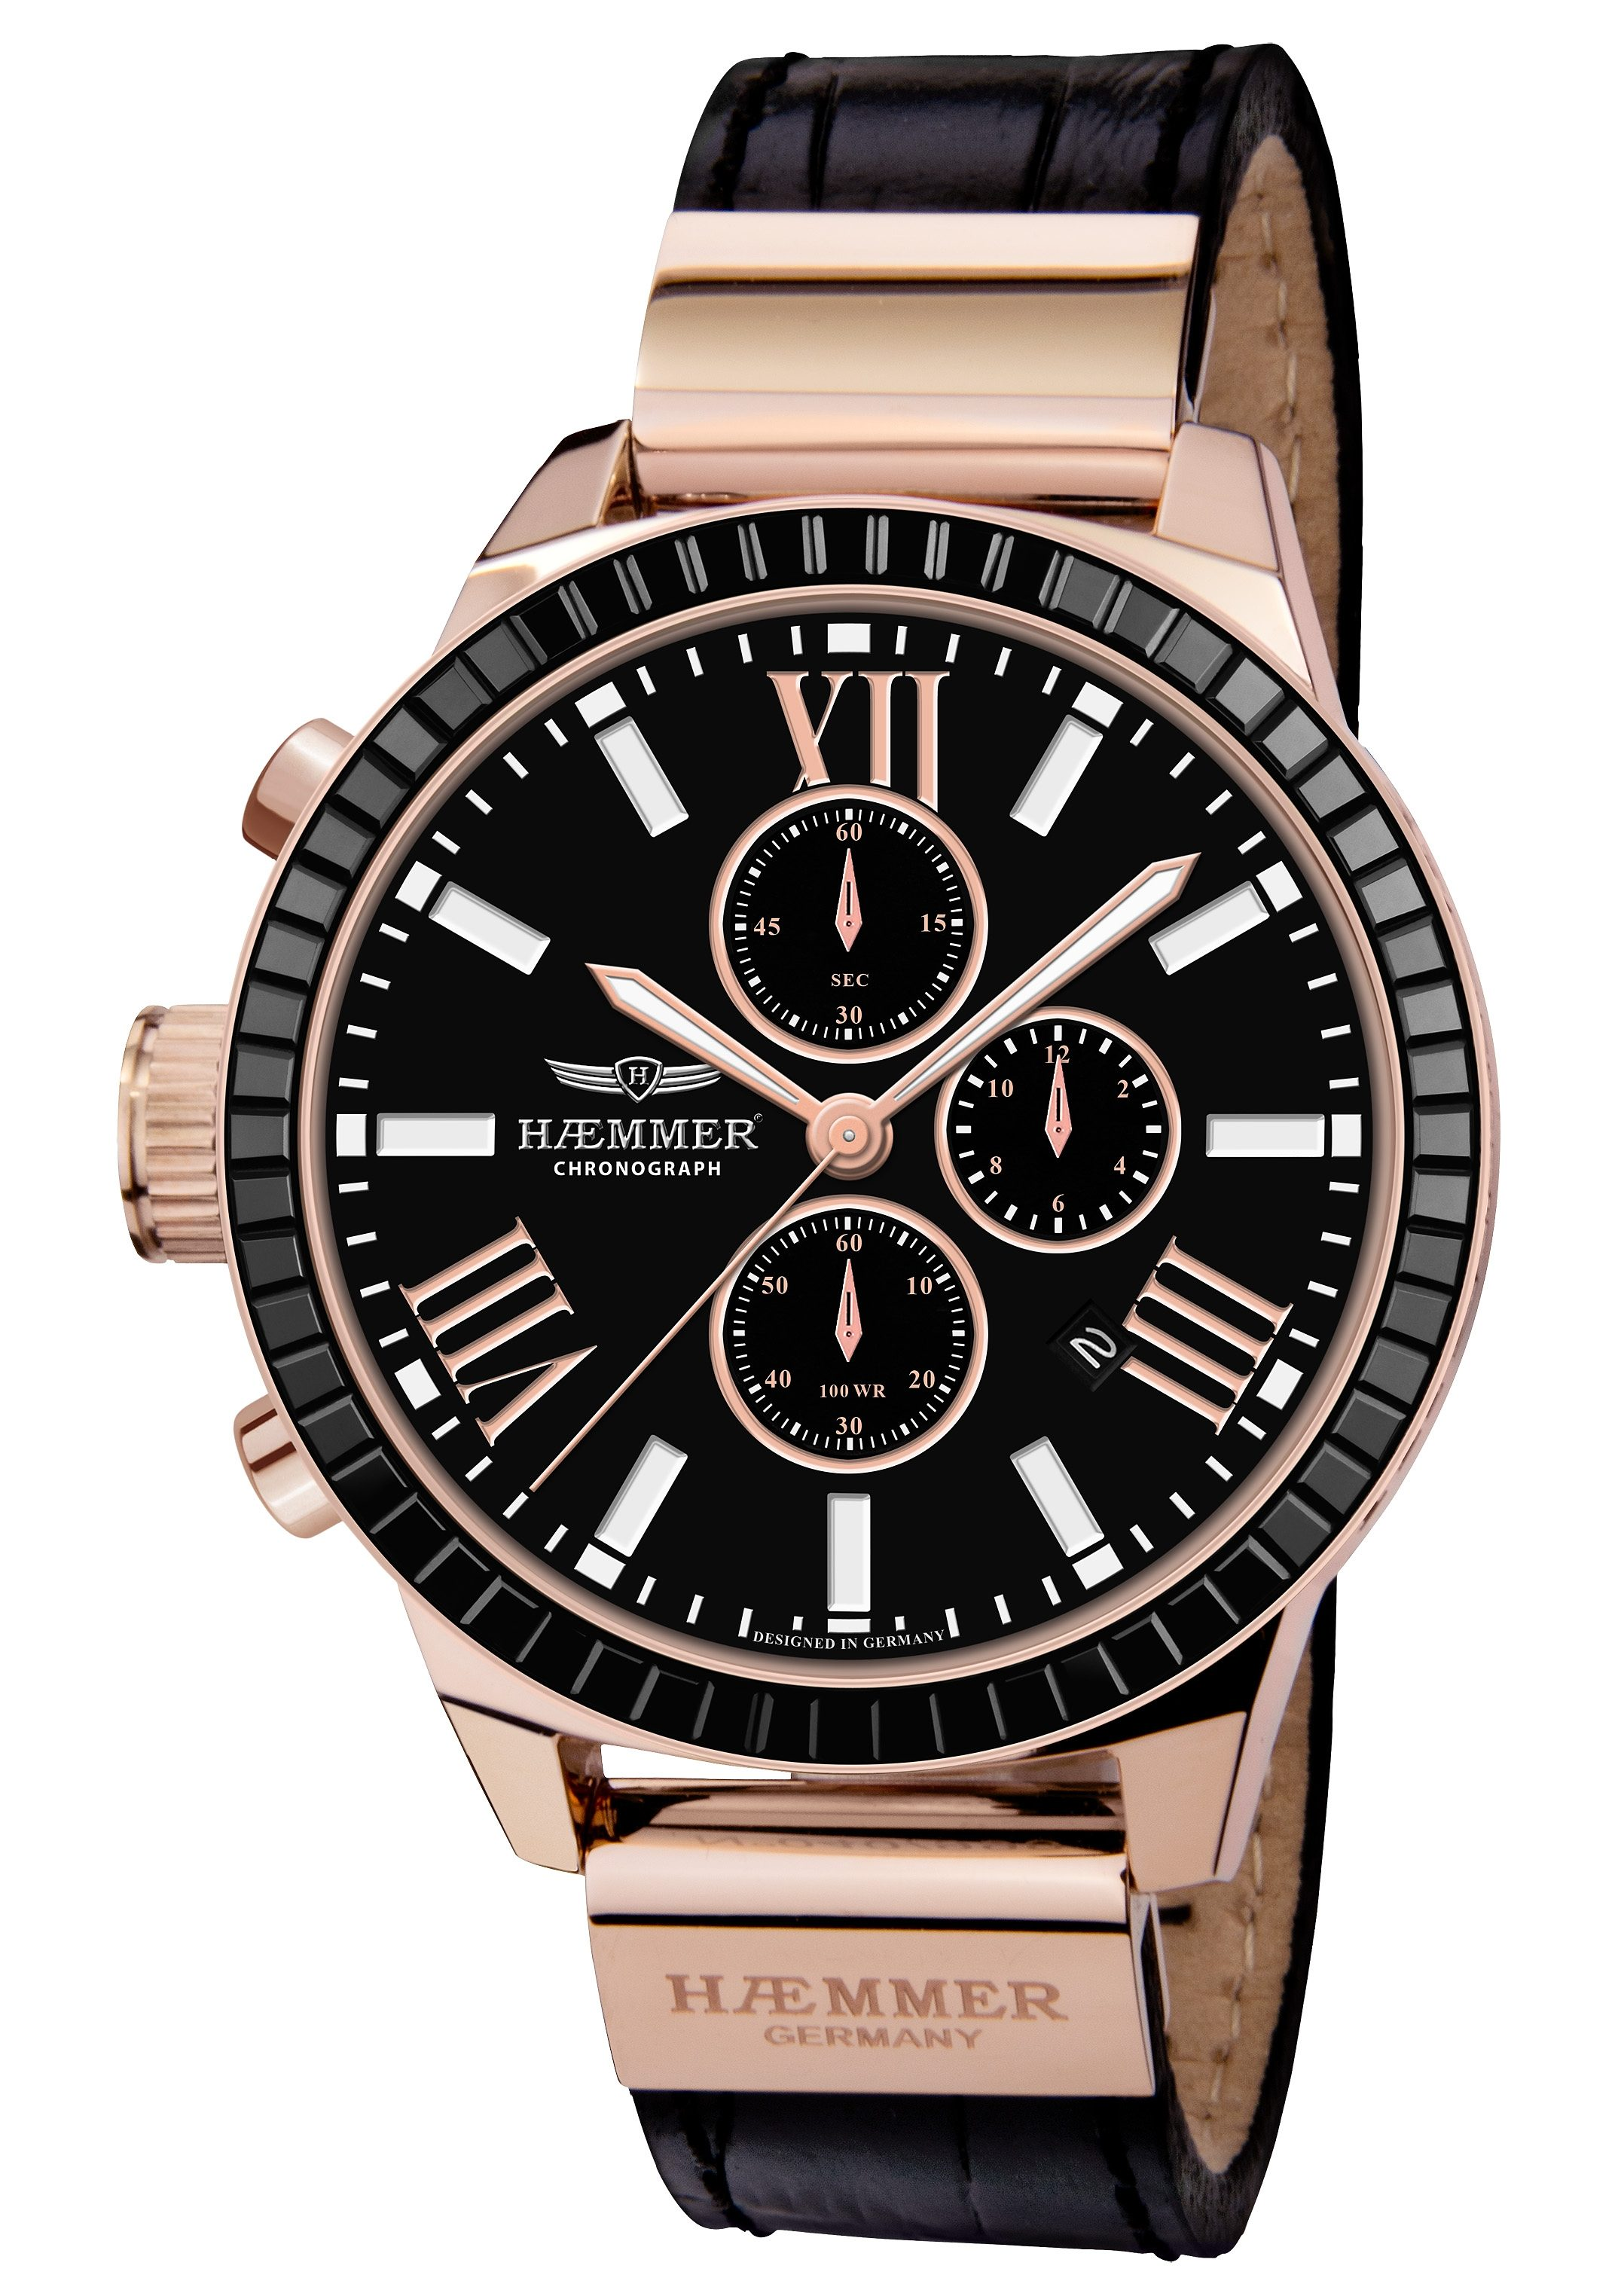 HAEMMER GERMANY Chronograph »MILA, BD-04«